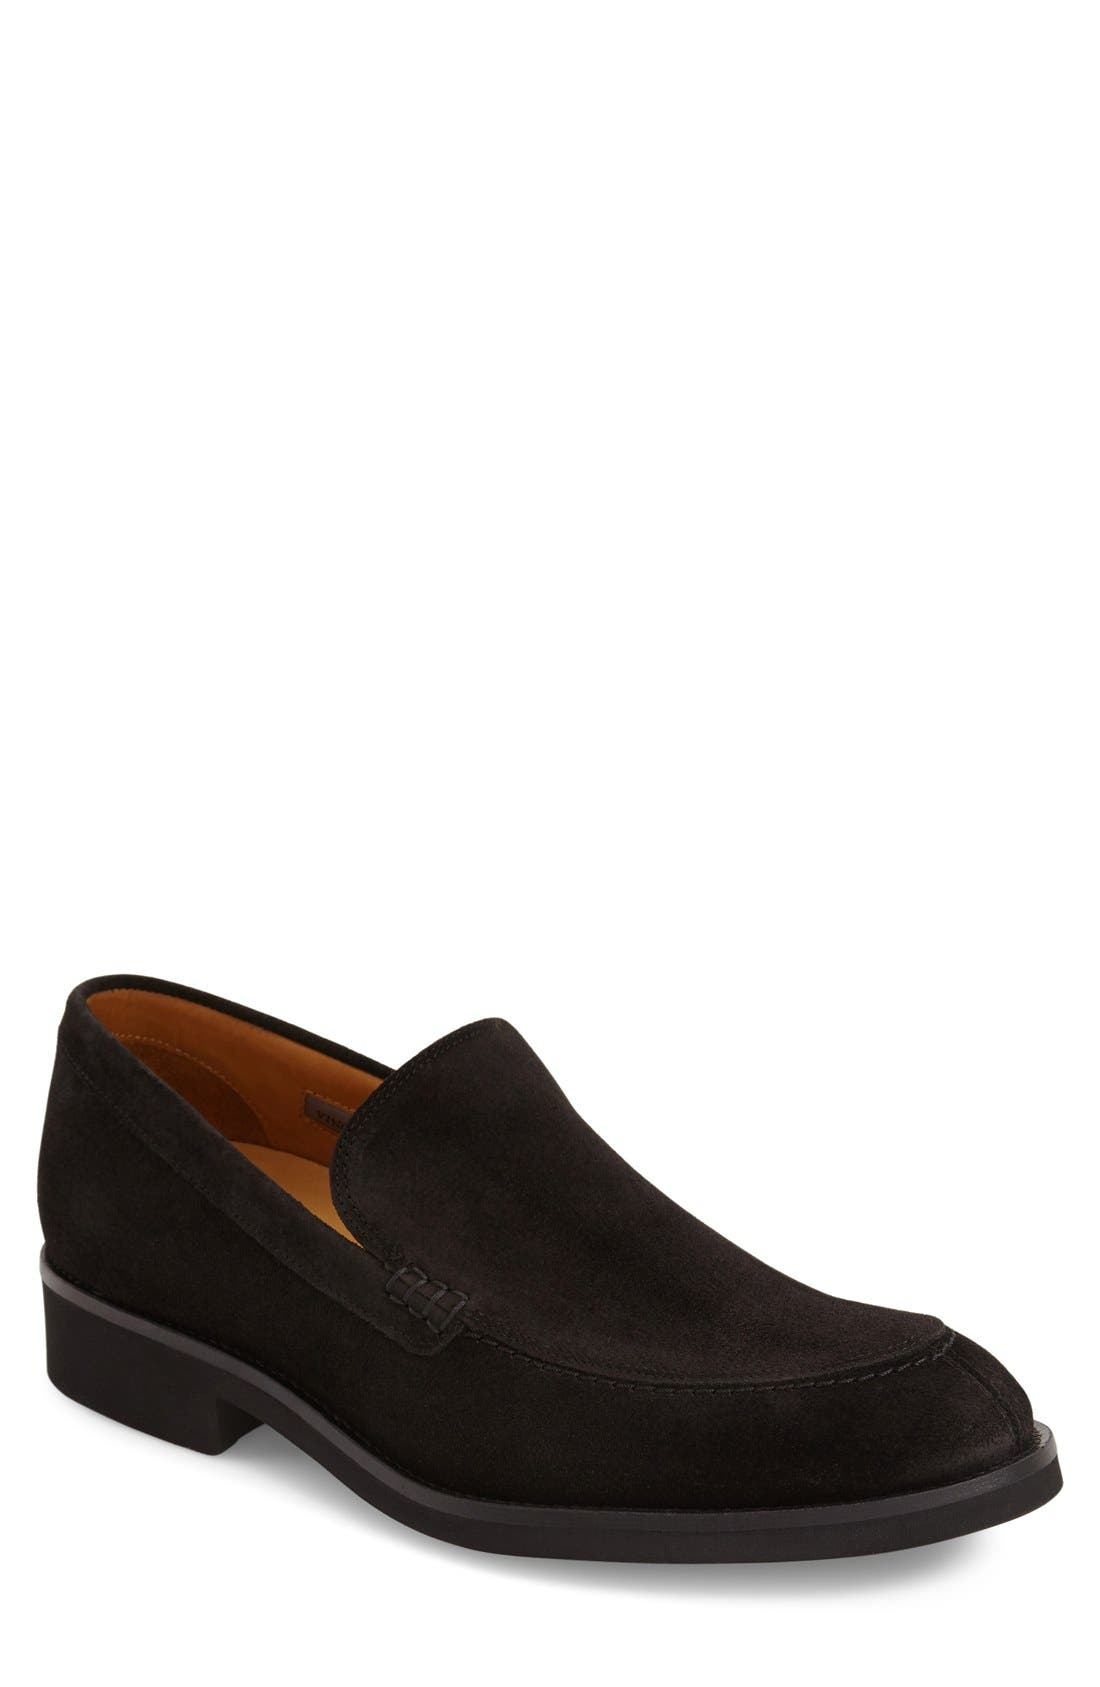 'Arleigh' Loafer,                         Main,                         color, 001